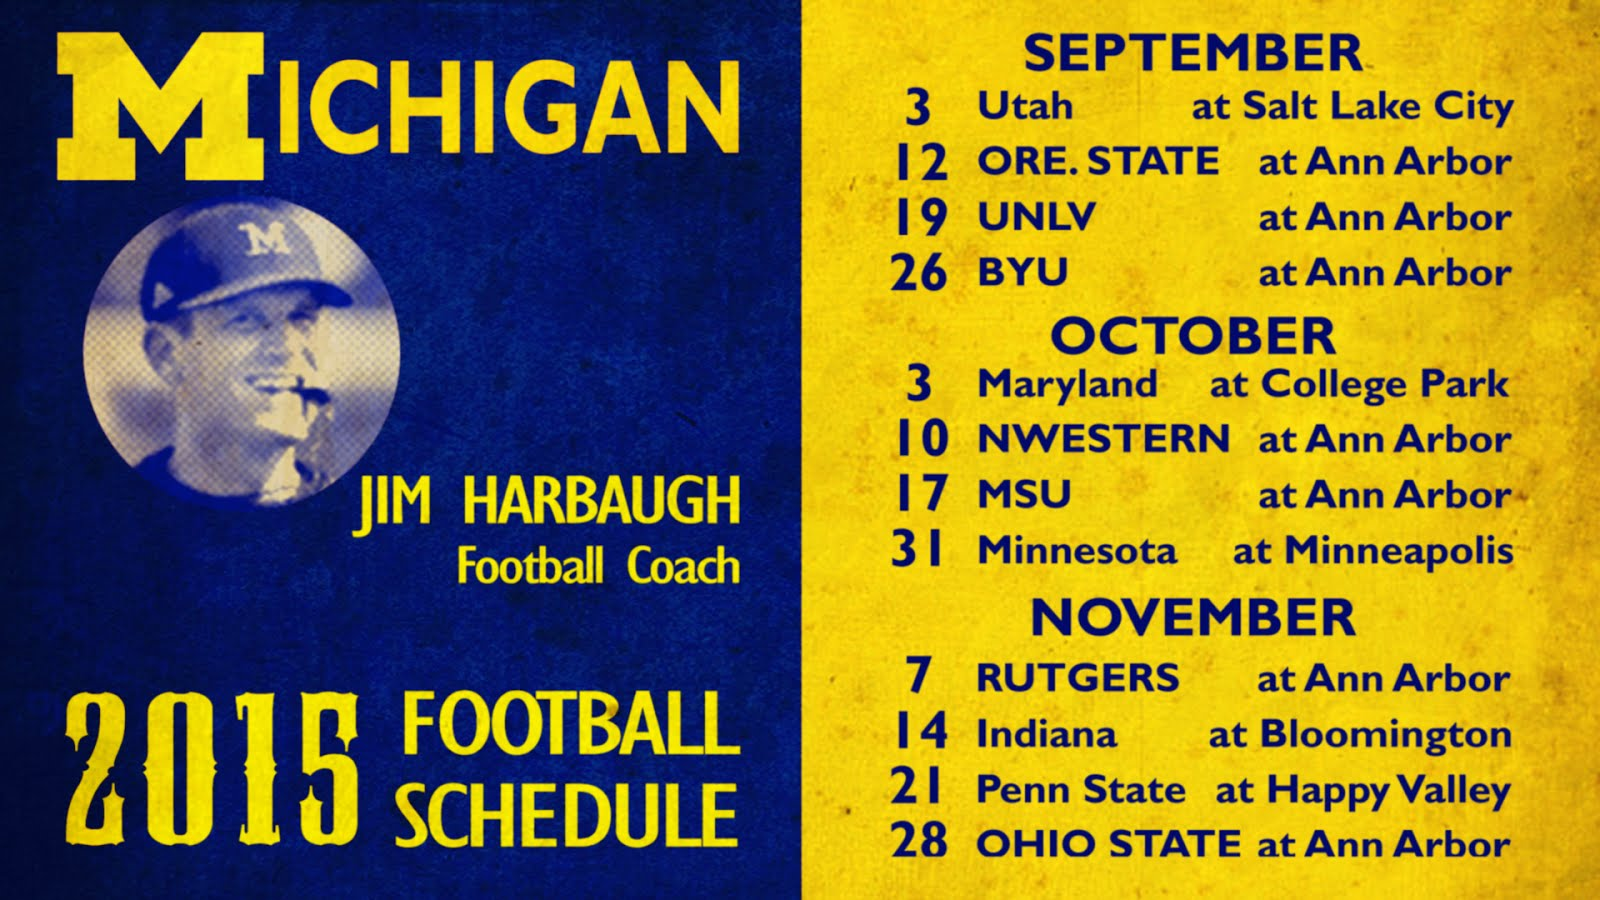 2015 Michigan Football Schedule